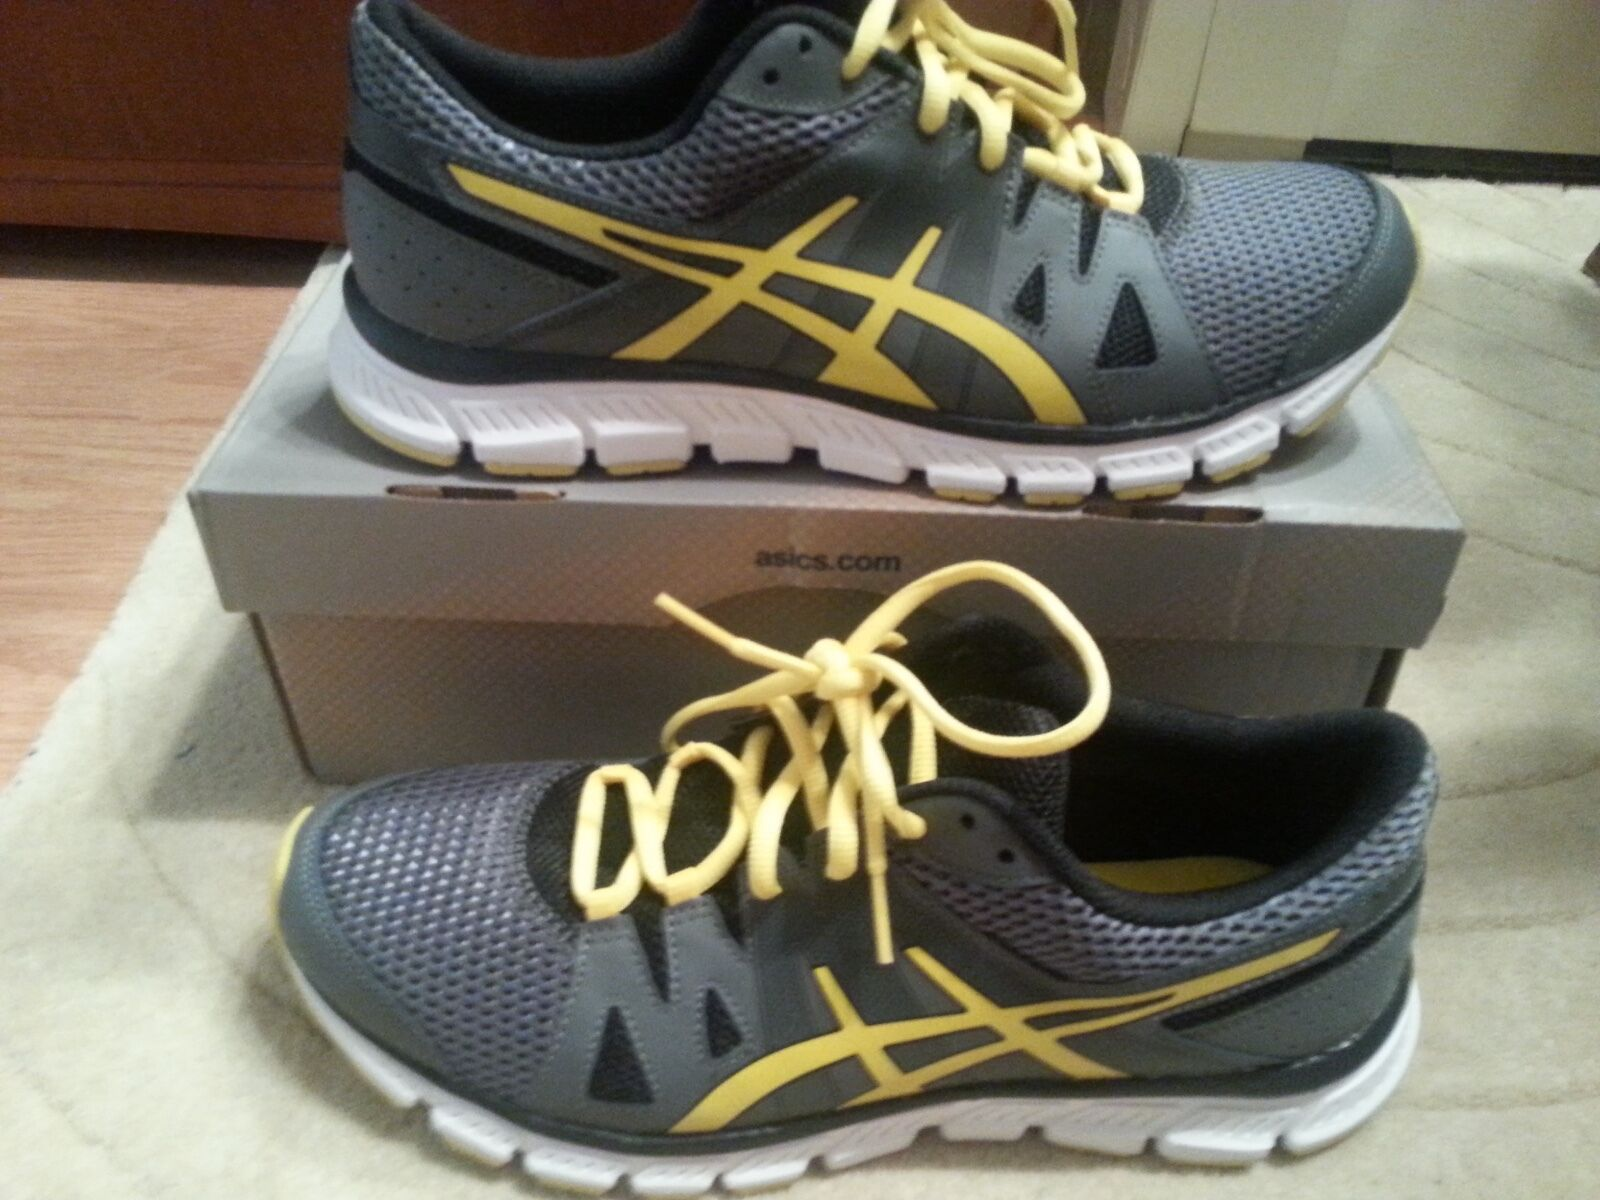 Asics Gel Unifire TR Training Shoe Charcoal Flash Yellow and Black, Size 10